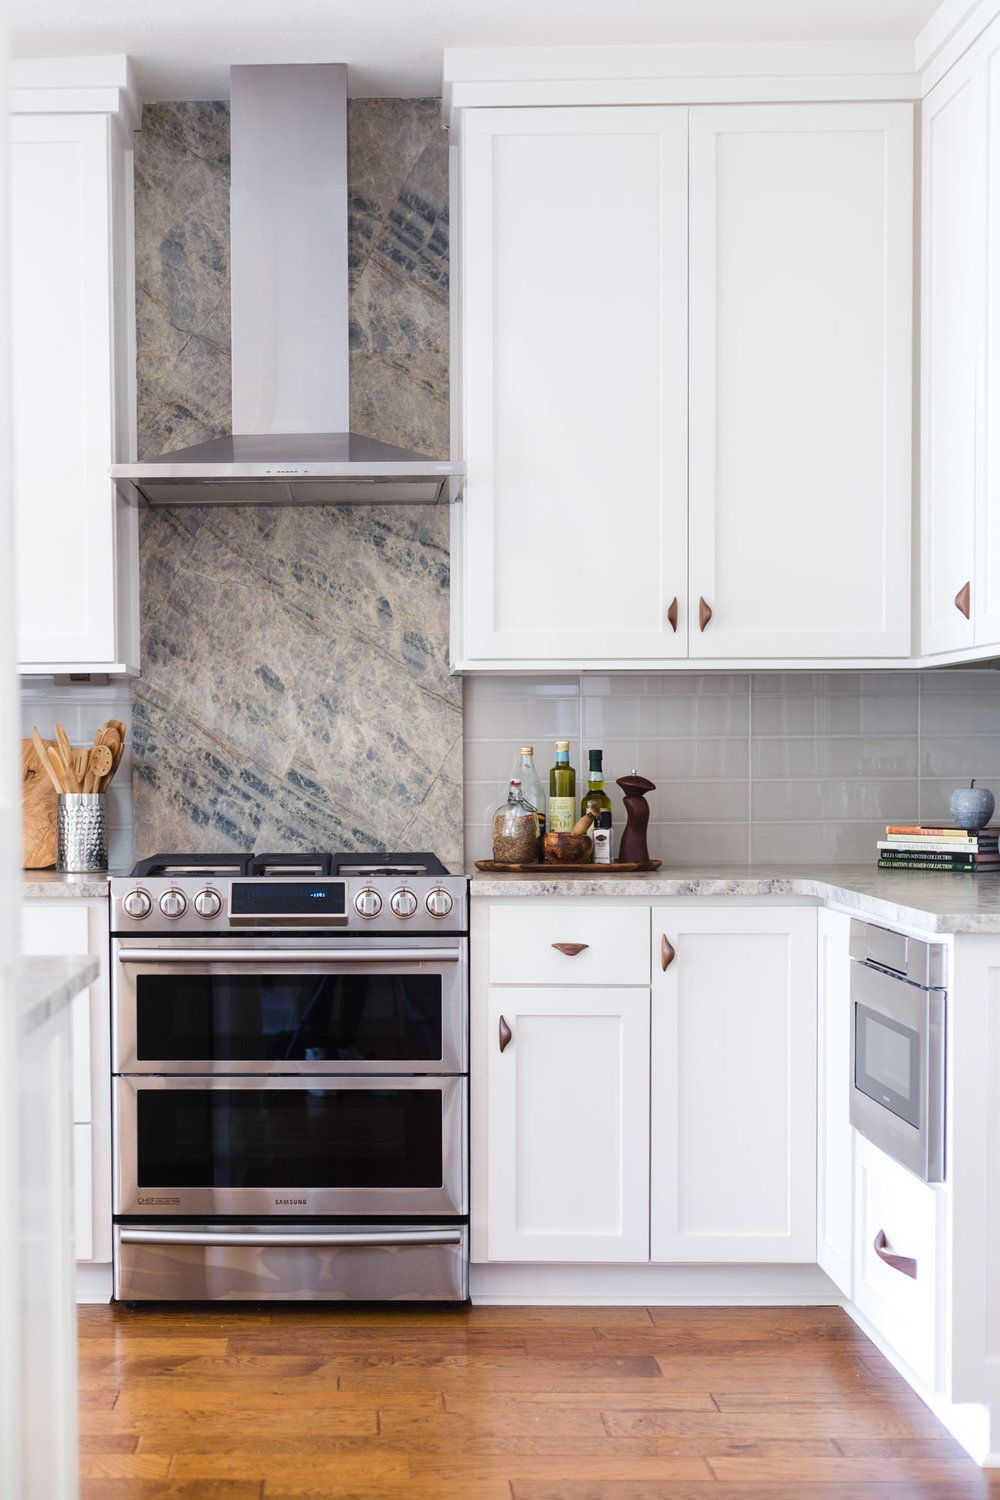 BEFORE AND AFTER - An Ordinary Kitchen Gets A Modern Remodel ...